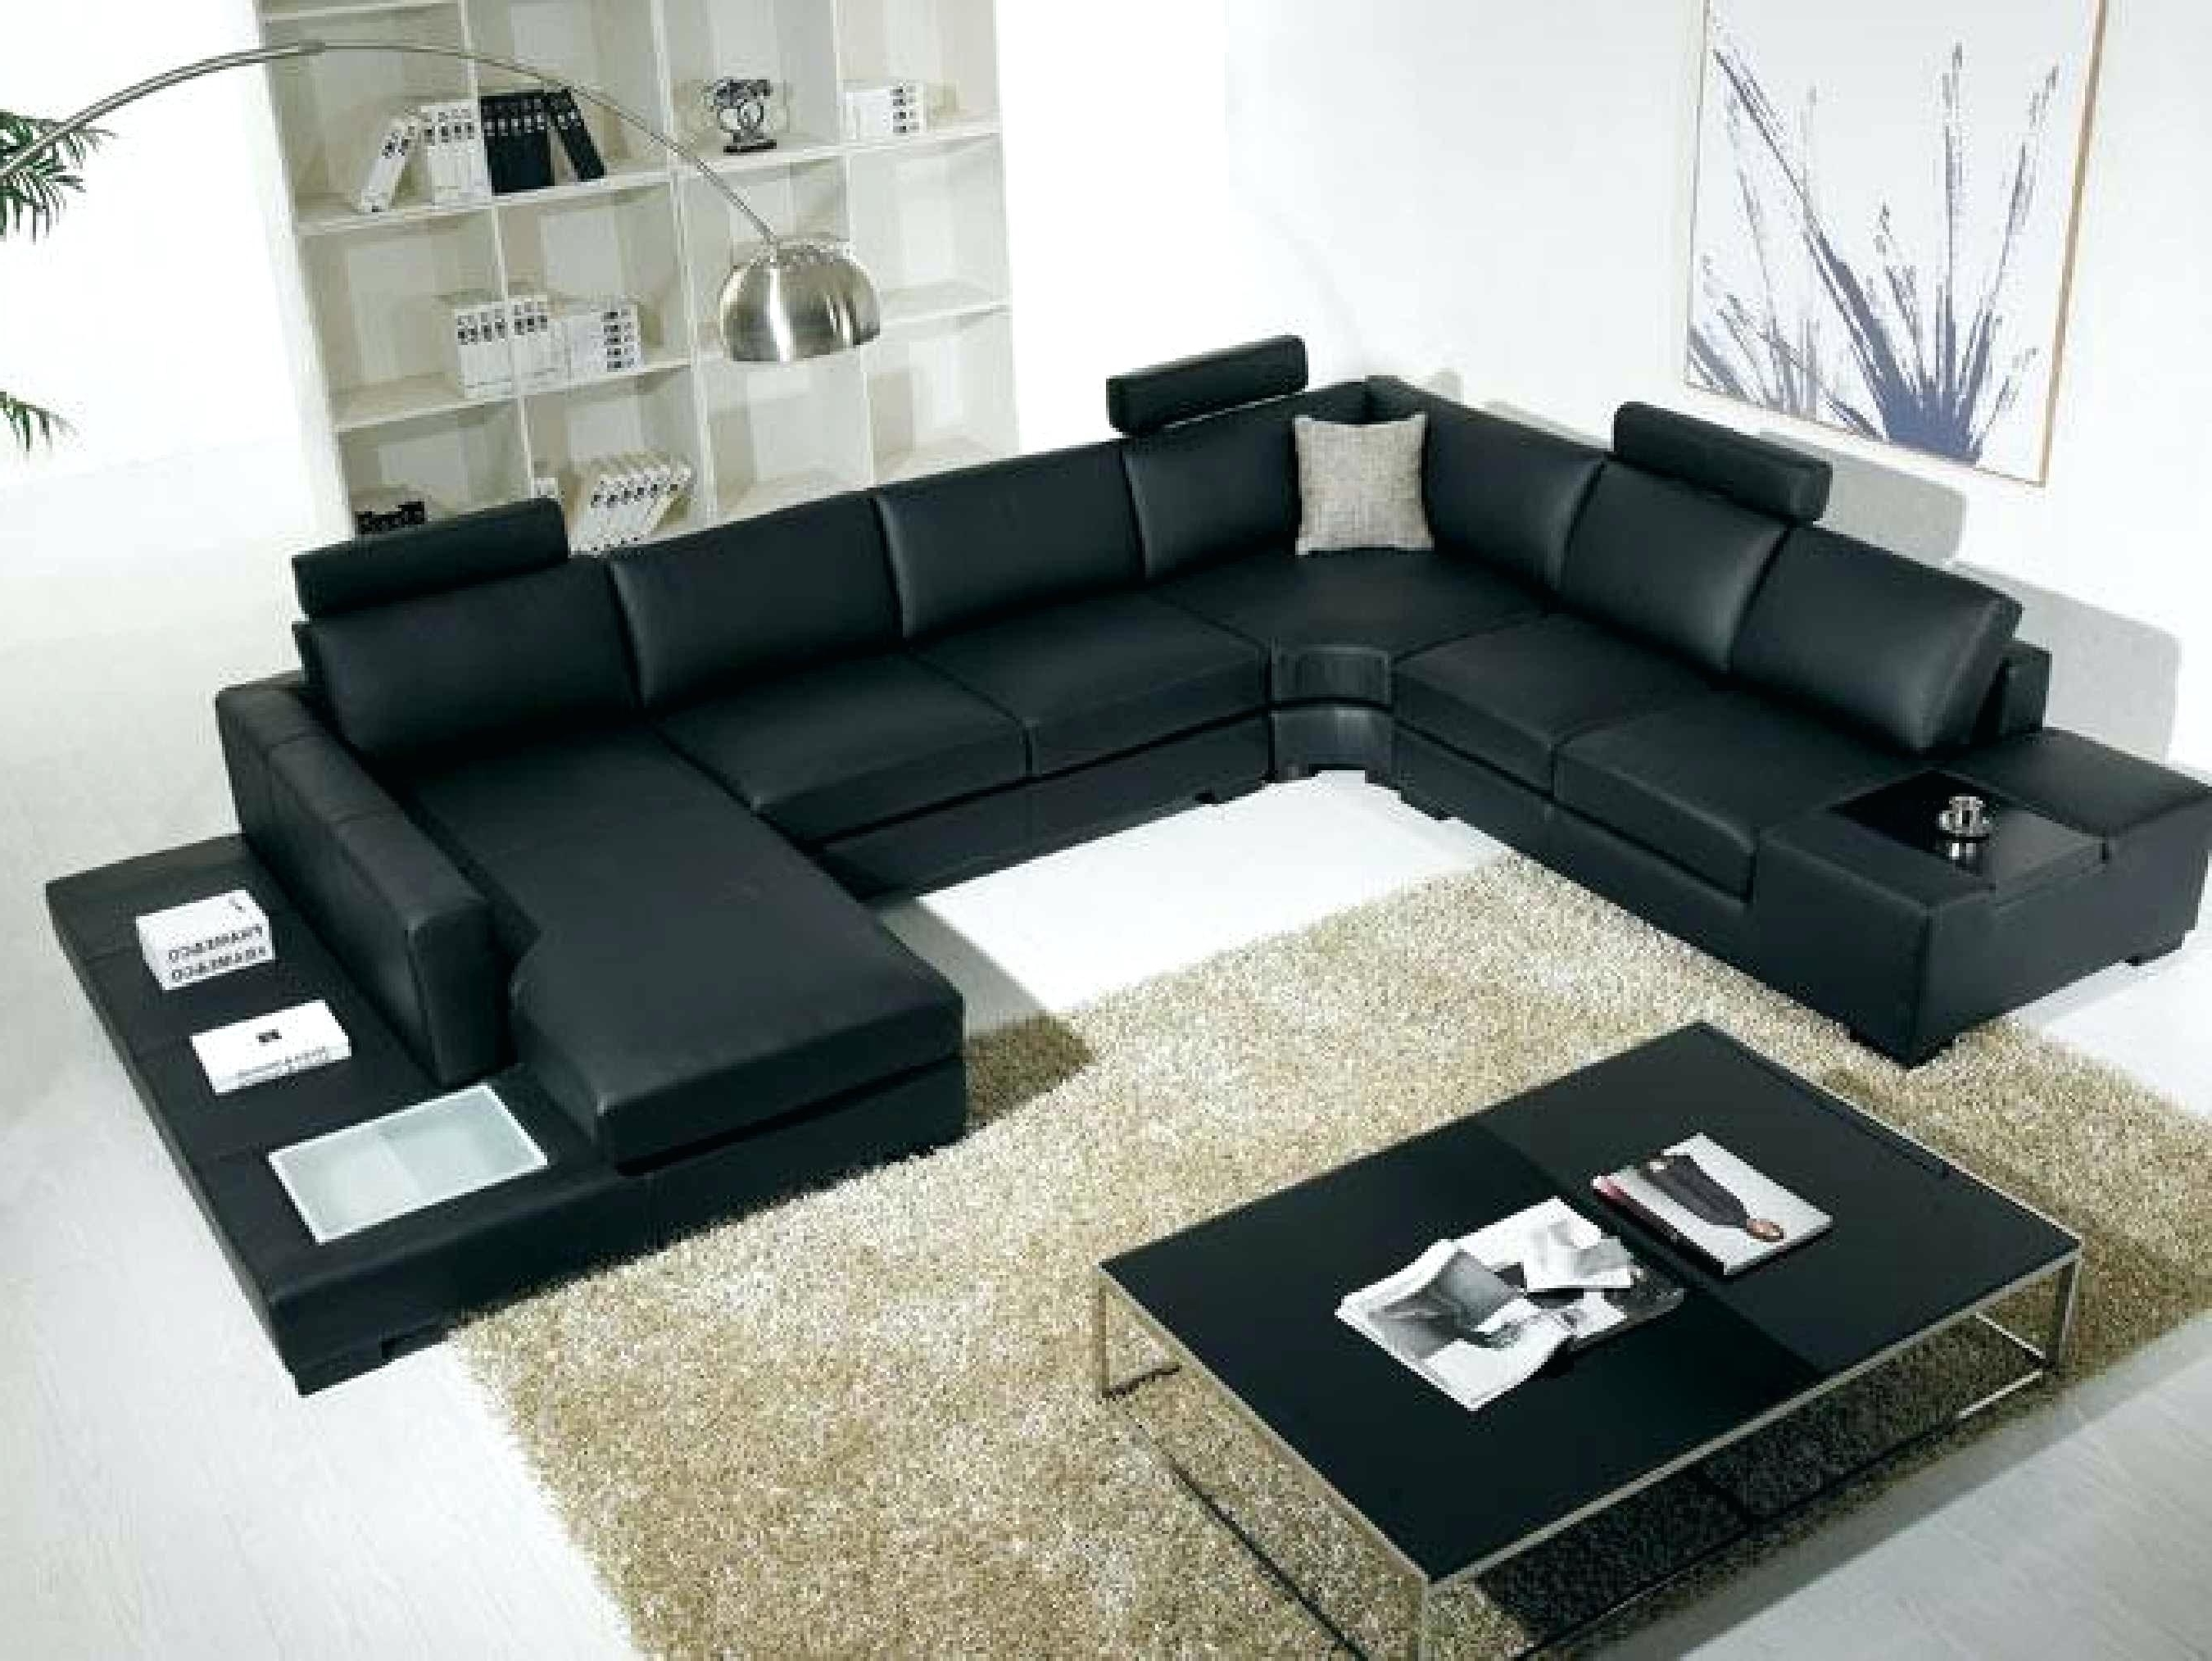 Most Recent Sofa Price Decore Furniture In Bangladesh Piyestra Sri Lanka Dedon For Philippines Sectional Sofas (View 8 of 15)